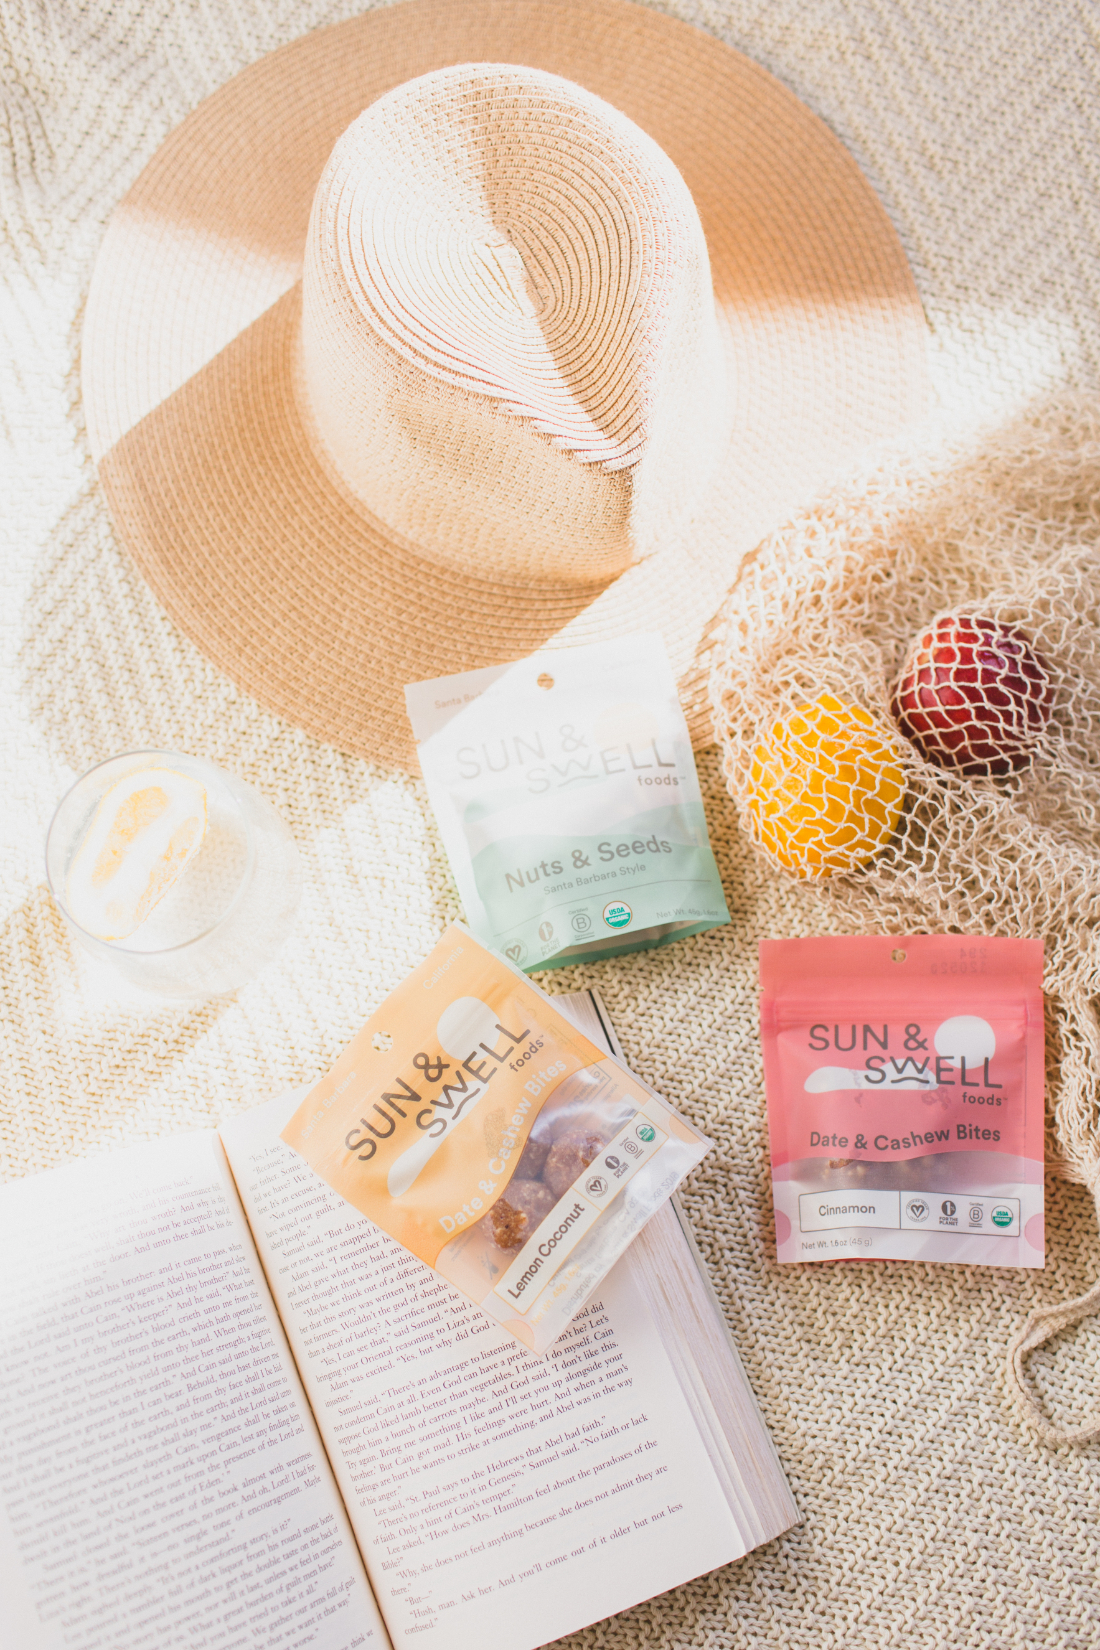 Sun & Swell snack pack